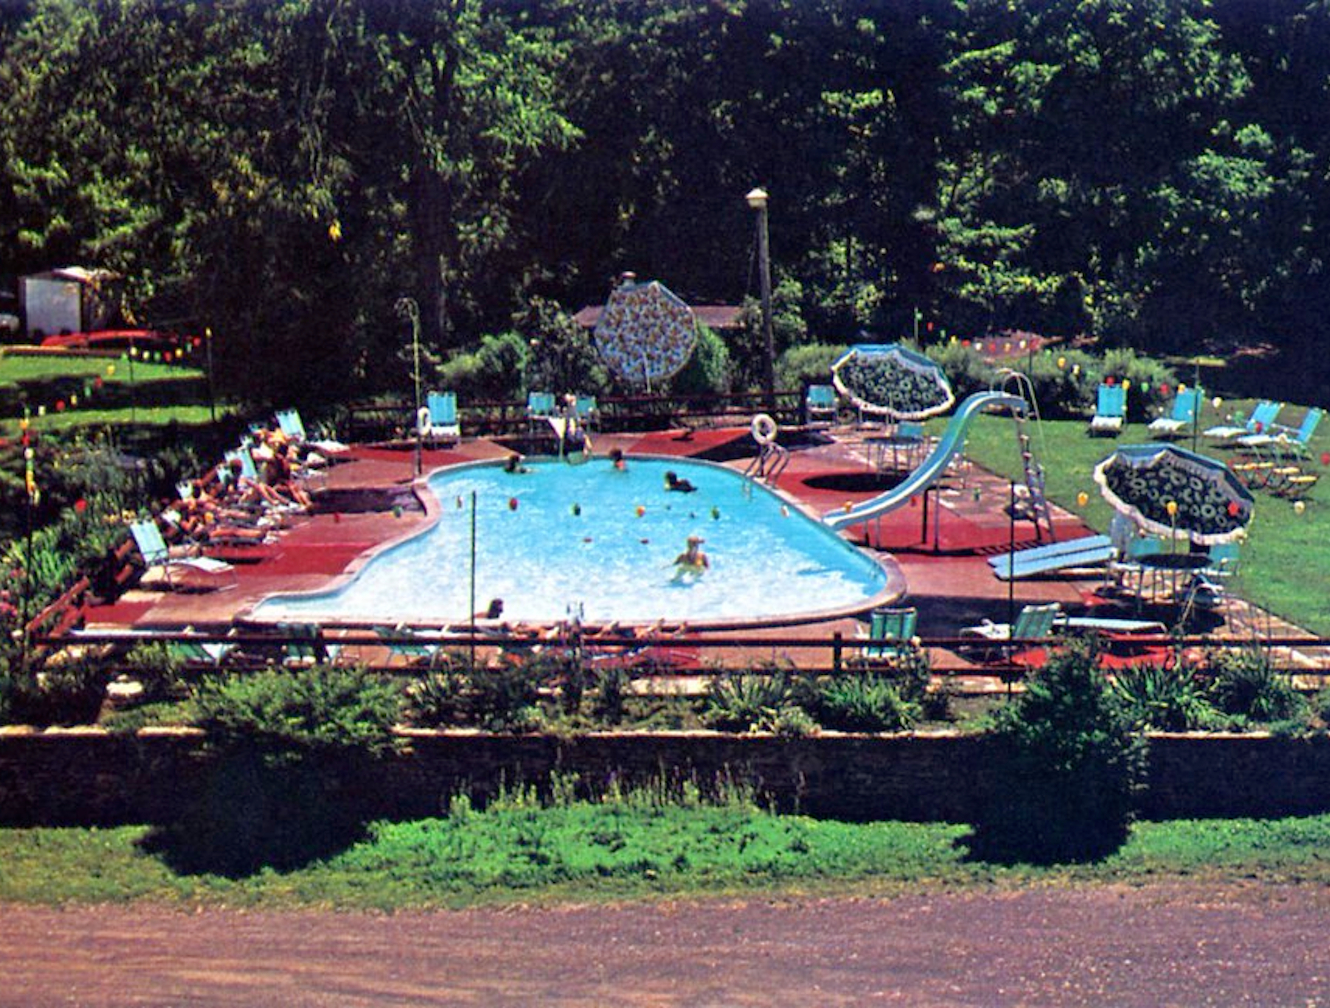 Historical picture of the Plum Point Lodge pool